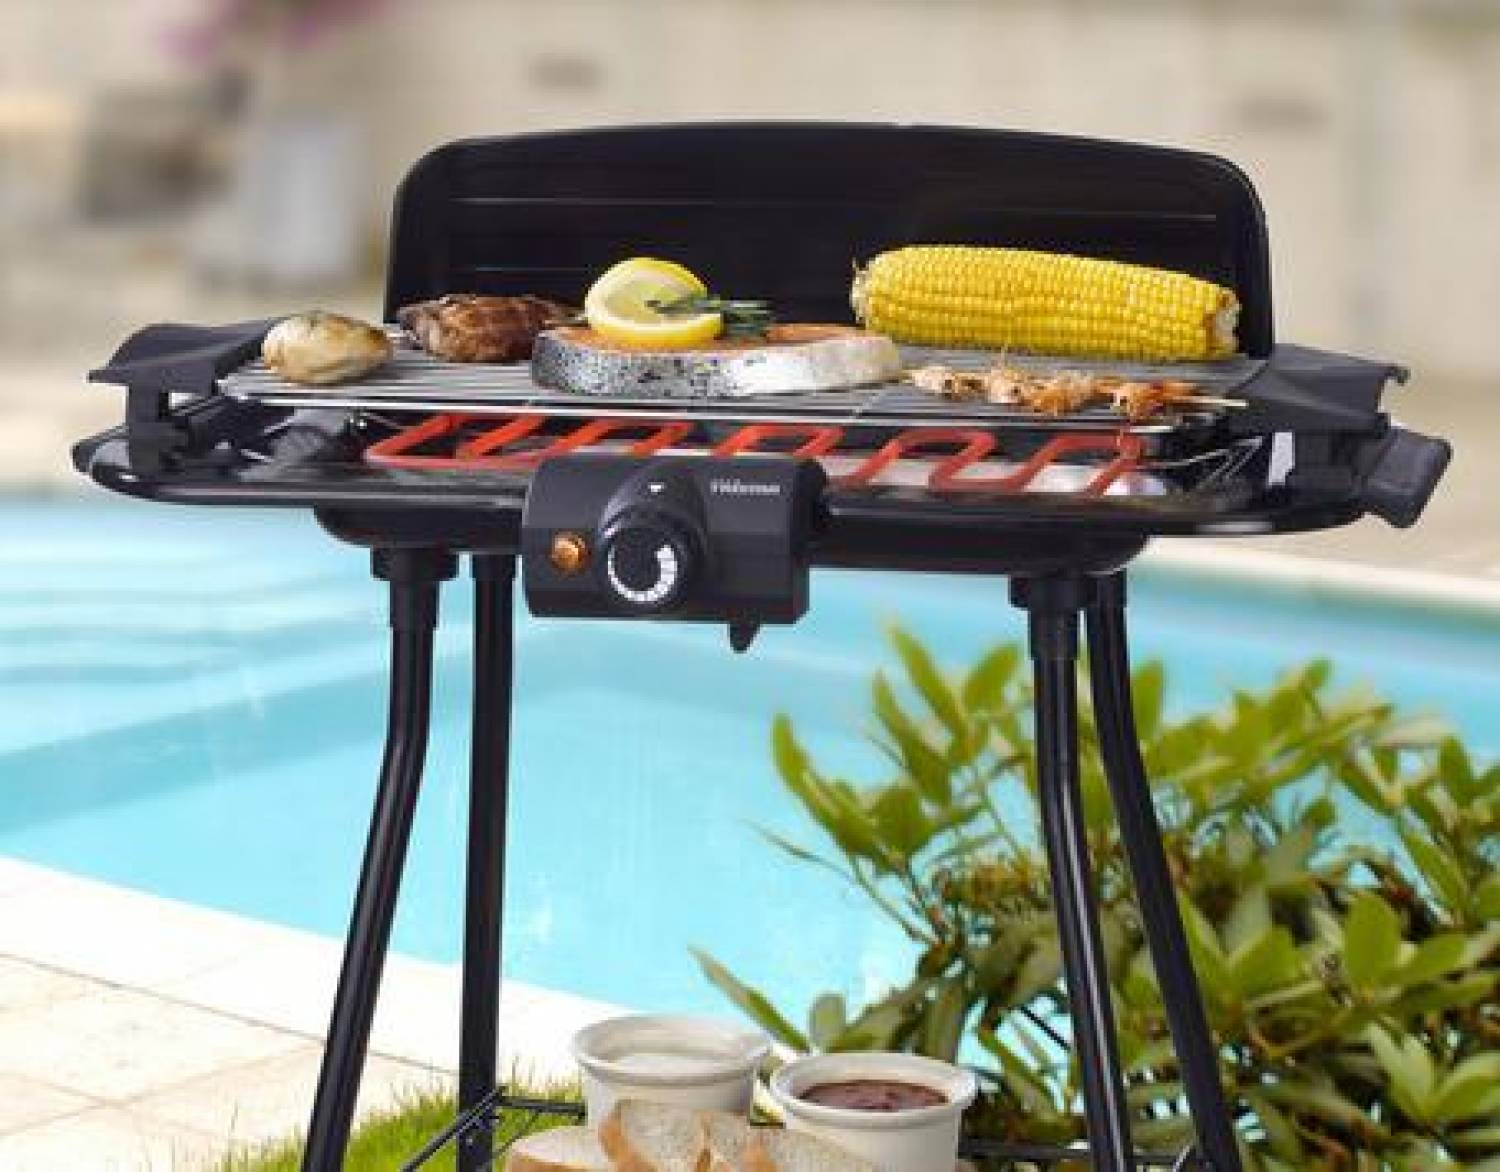 Barbecue stand on stable stands with windshield